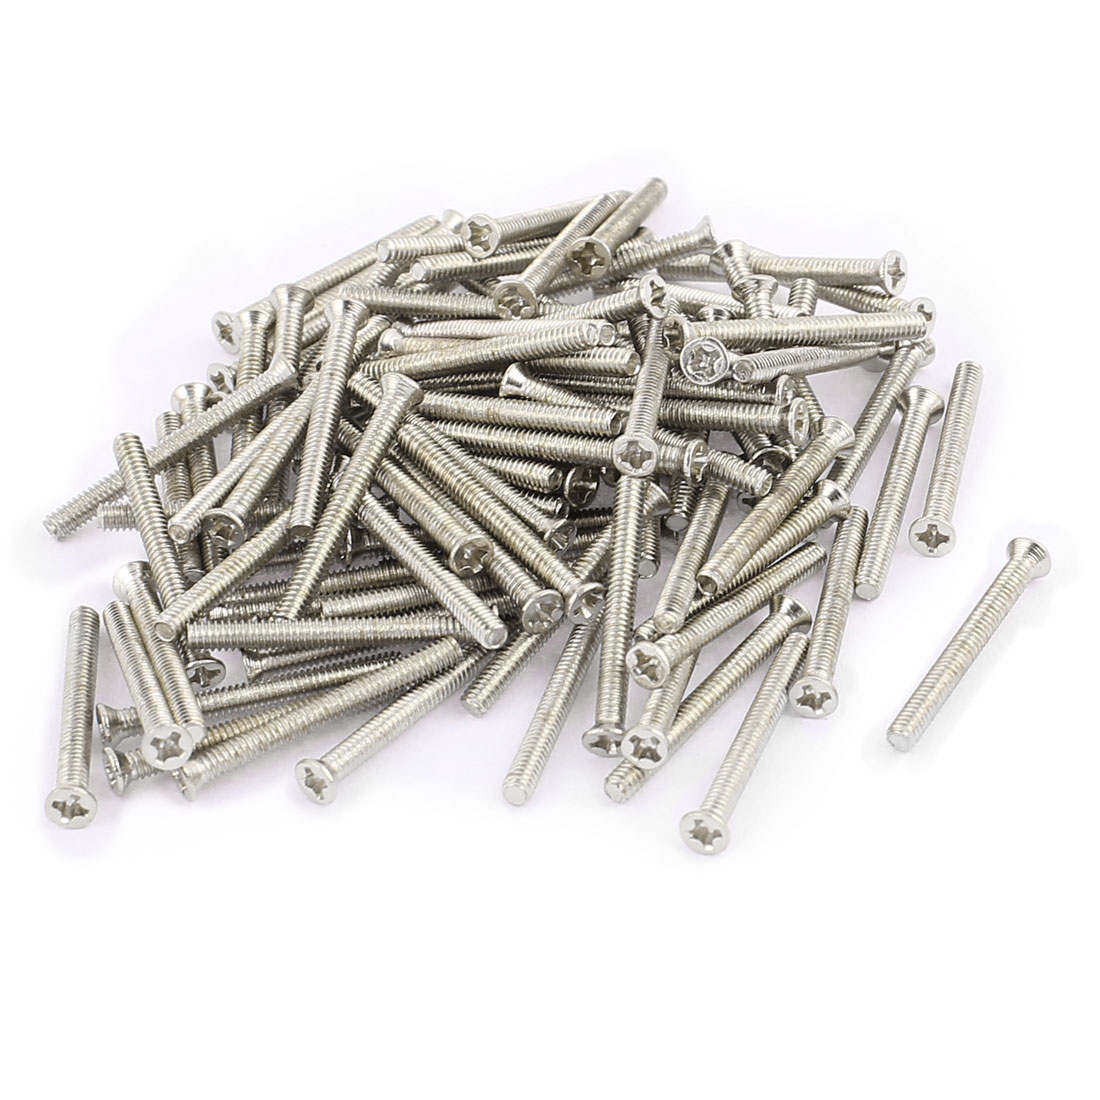 100 Pcs M2x20mm Stainless Steel Countersunk Flat Head Phillips Machine Screws Bolts